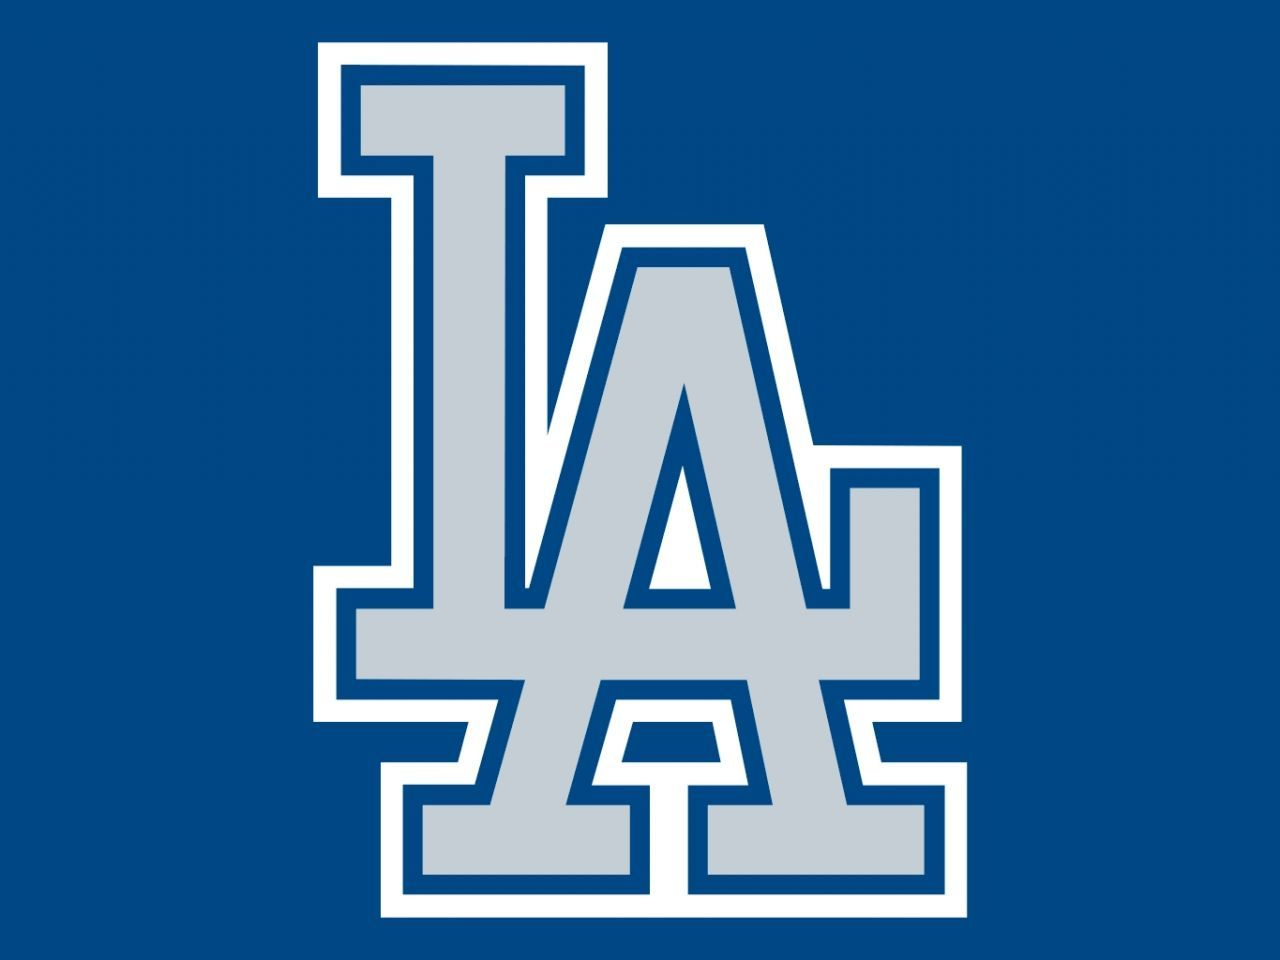 free los angeles dodgers wallpapers hd wallpapers pinterest hd rh pinterest com City of Los Angeles Logo City of Los Angeles Logo